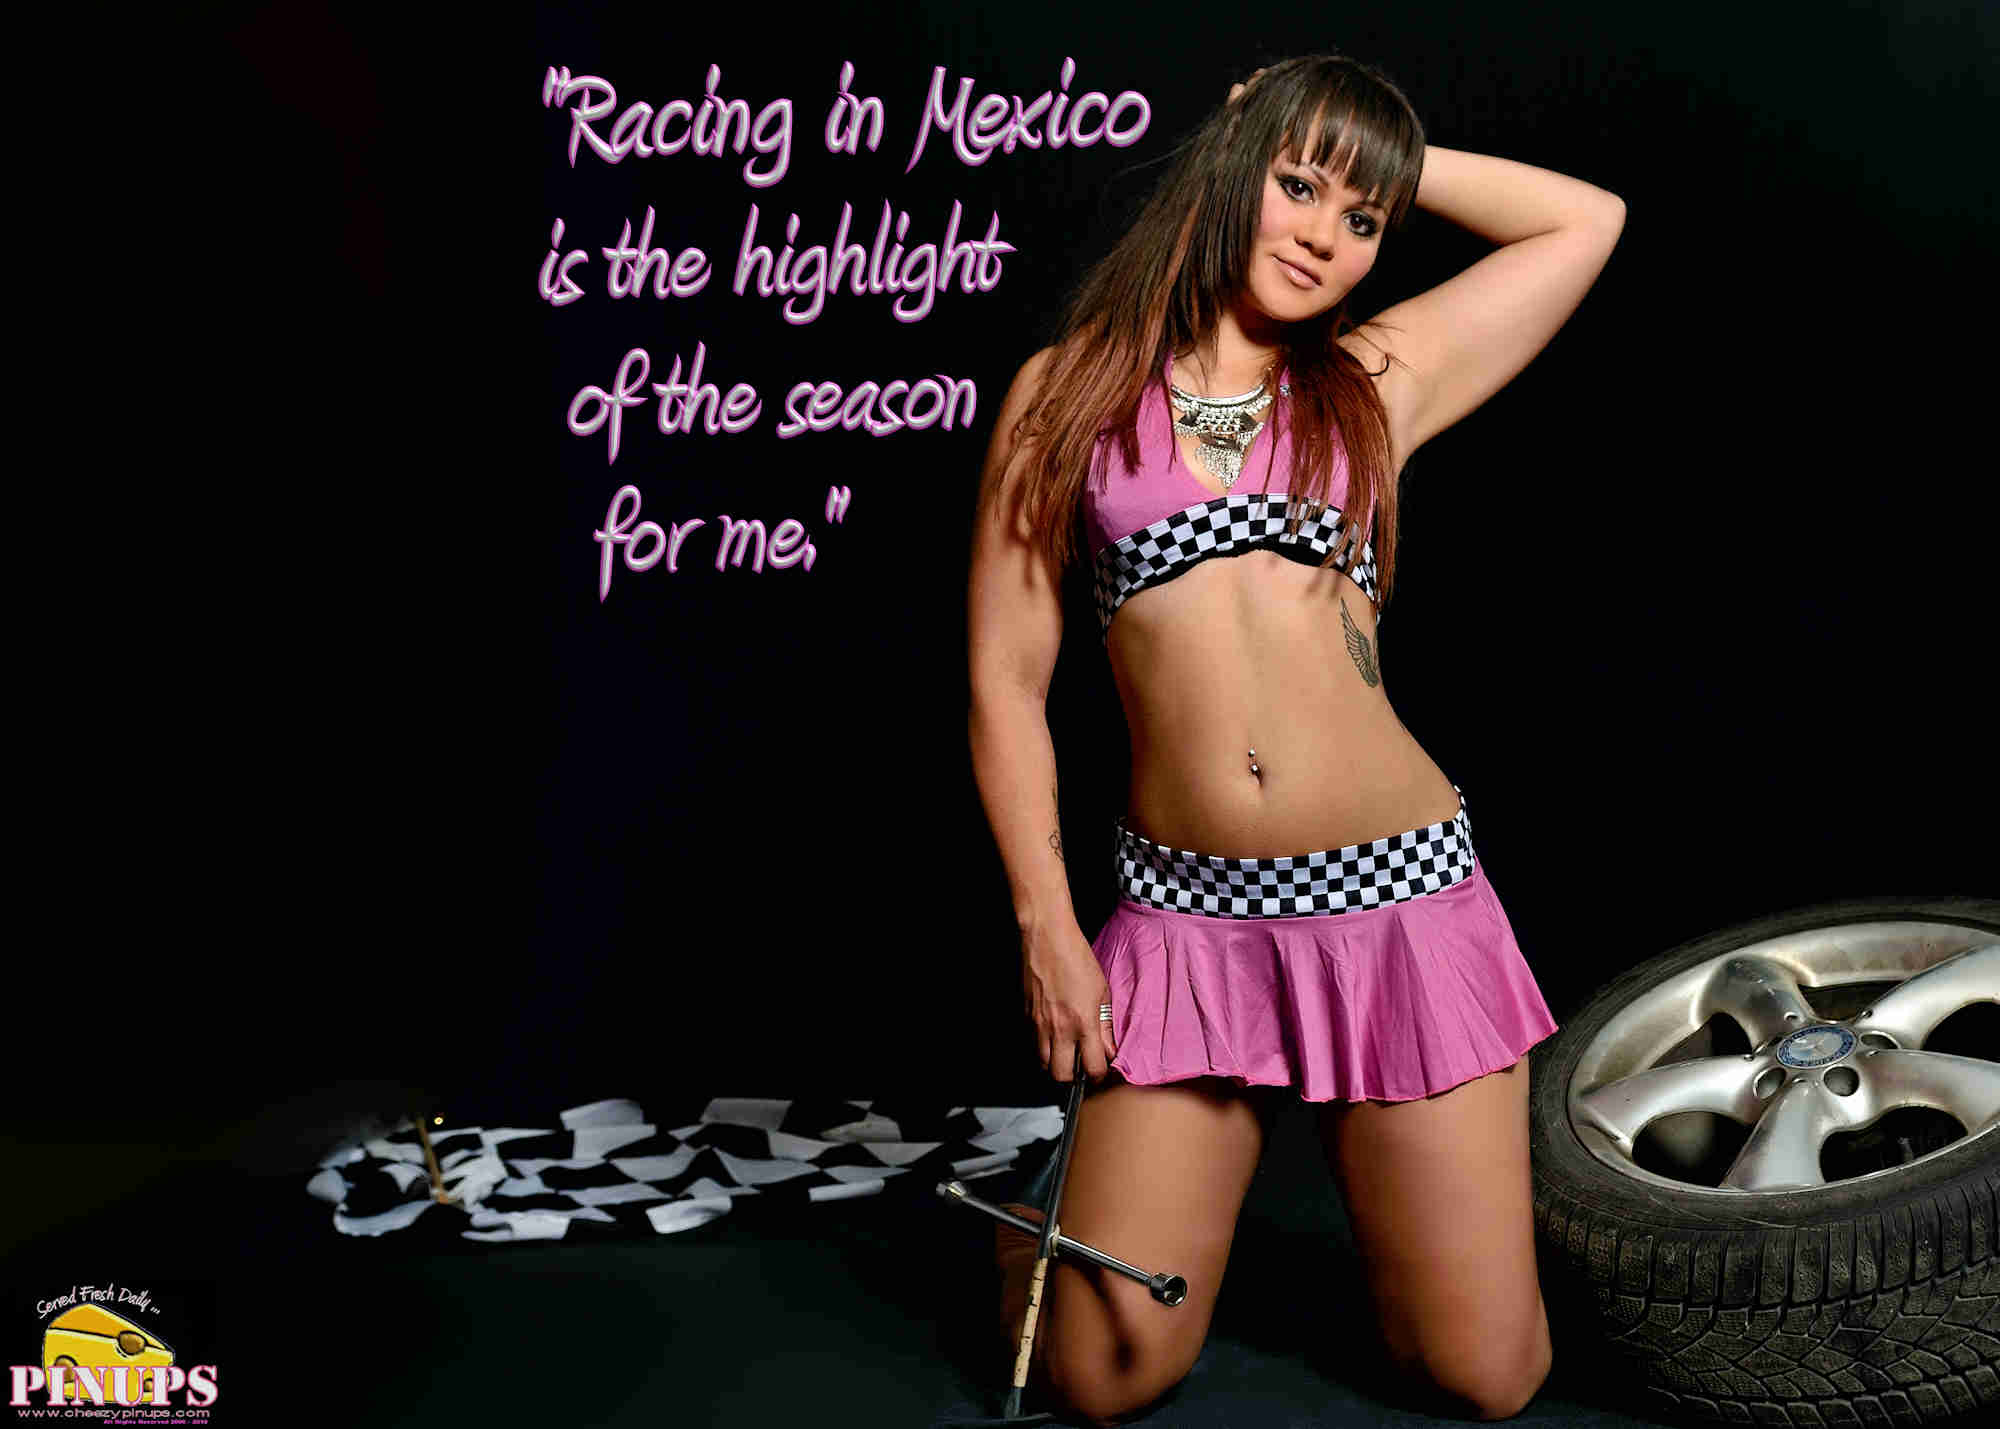 "Cheezy Pinup - October 28, 2018   ""Racing in Mexico is the highlight of the season for me."" - Sergio Perez Model: Shanelle"